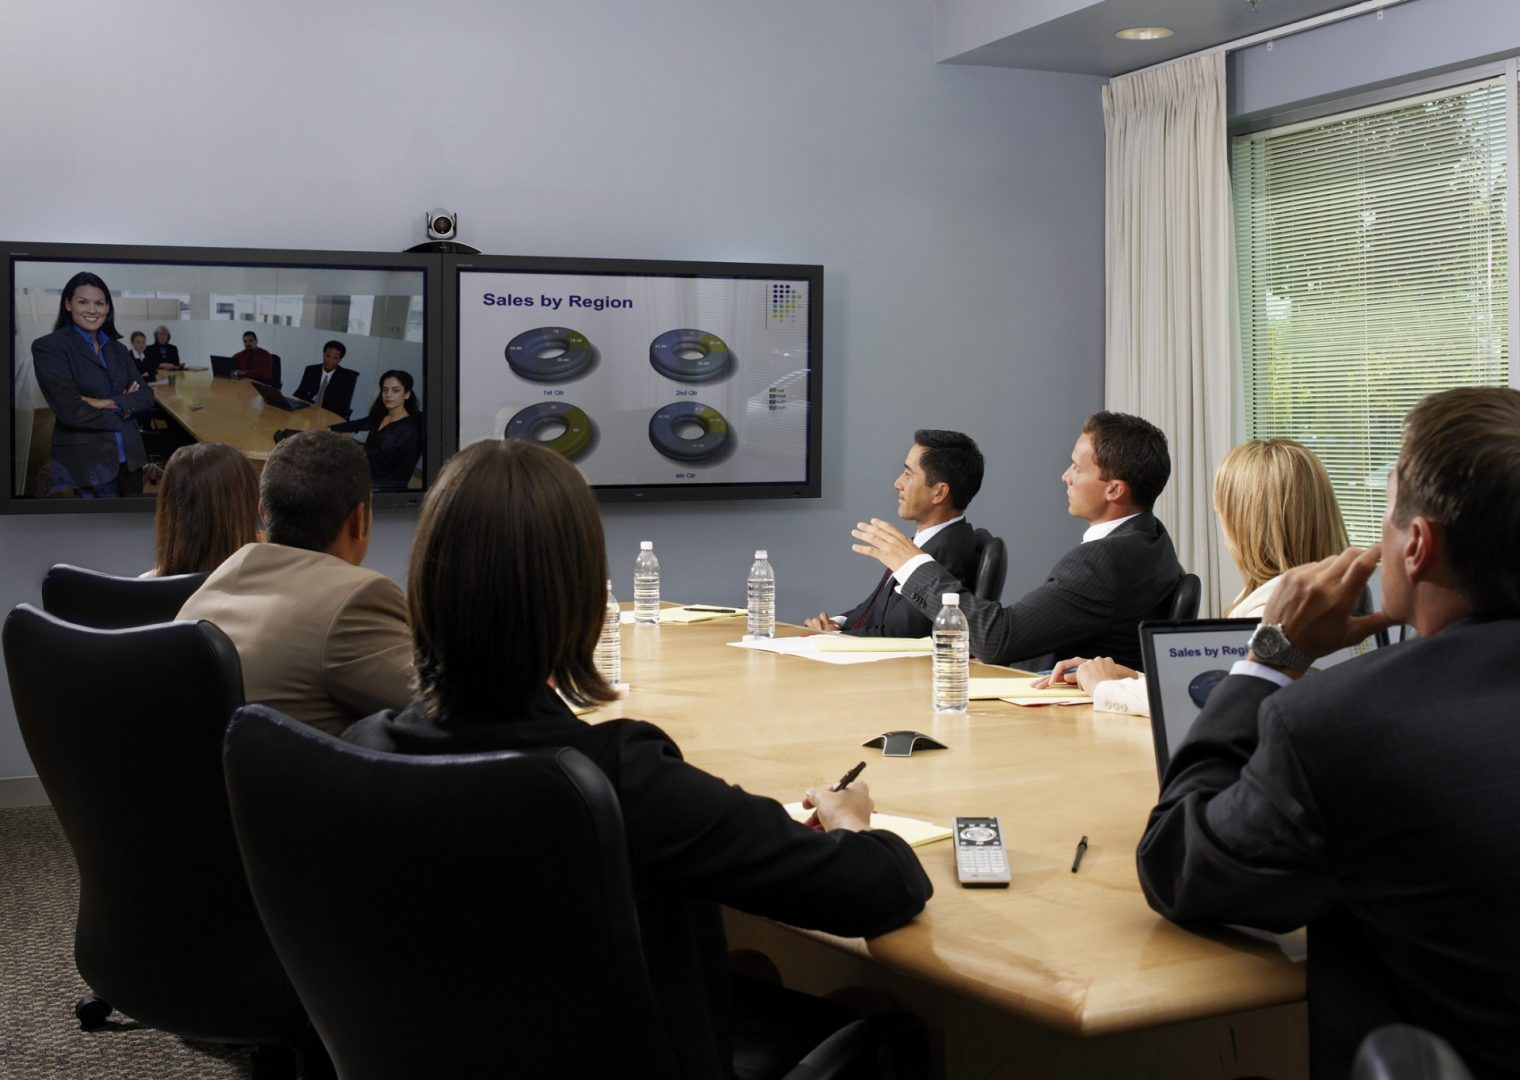 Dual Screen Video Conferencing Configuration